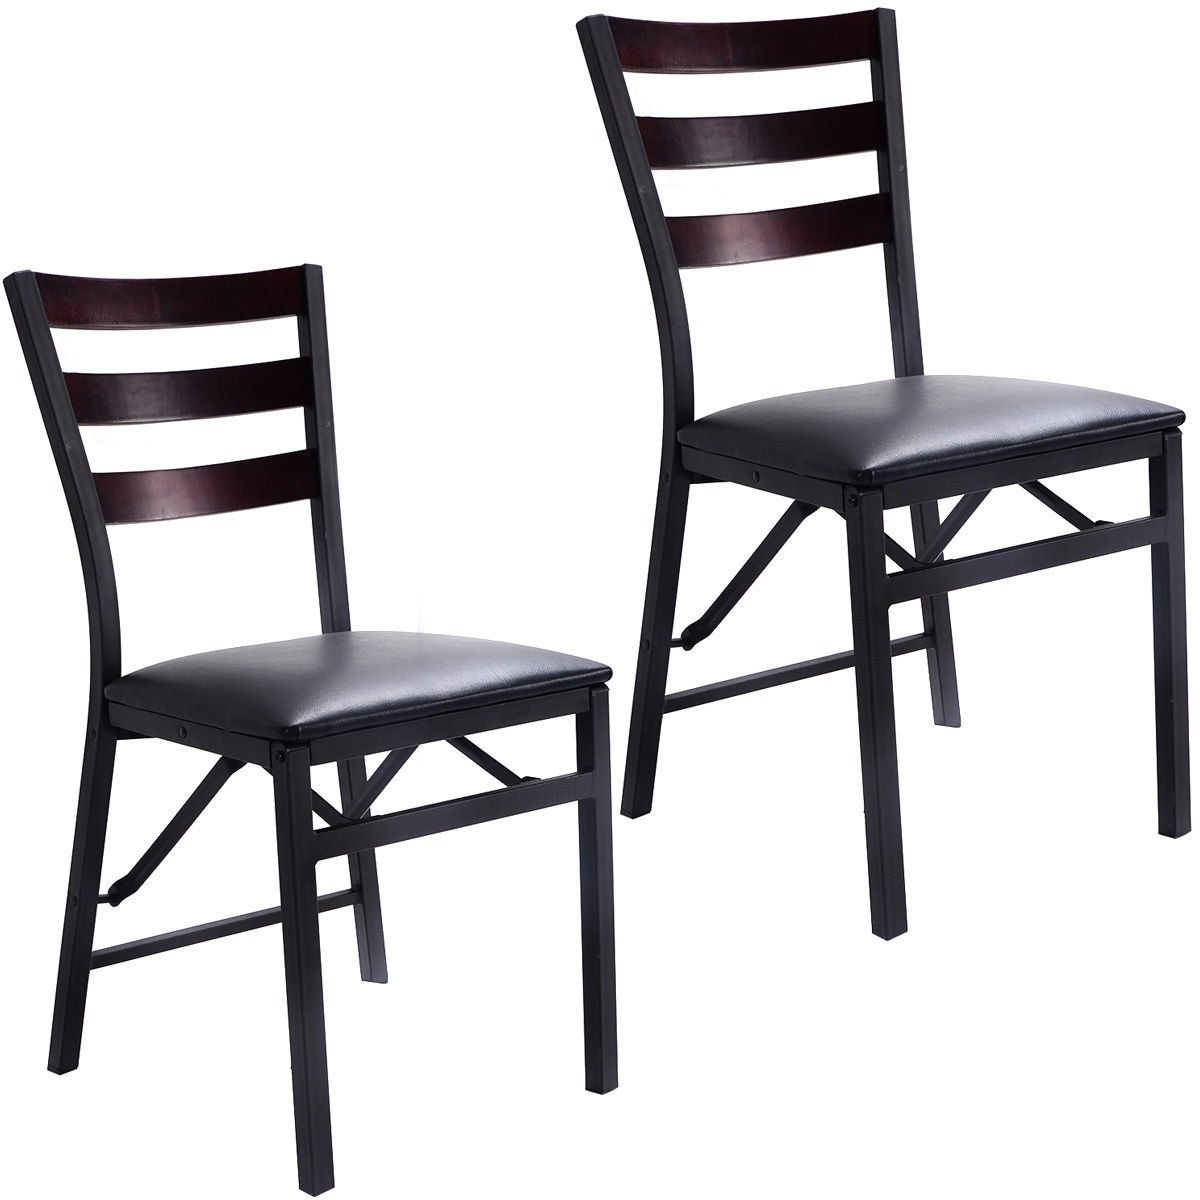 Giantex Set of 2 Wood Folding Chair Dining Chairs Home Restaurant Furniture Portable (15.6'' X 17.7'' X 33.5'')